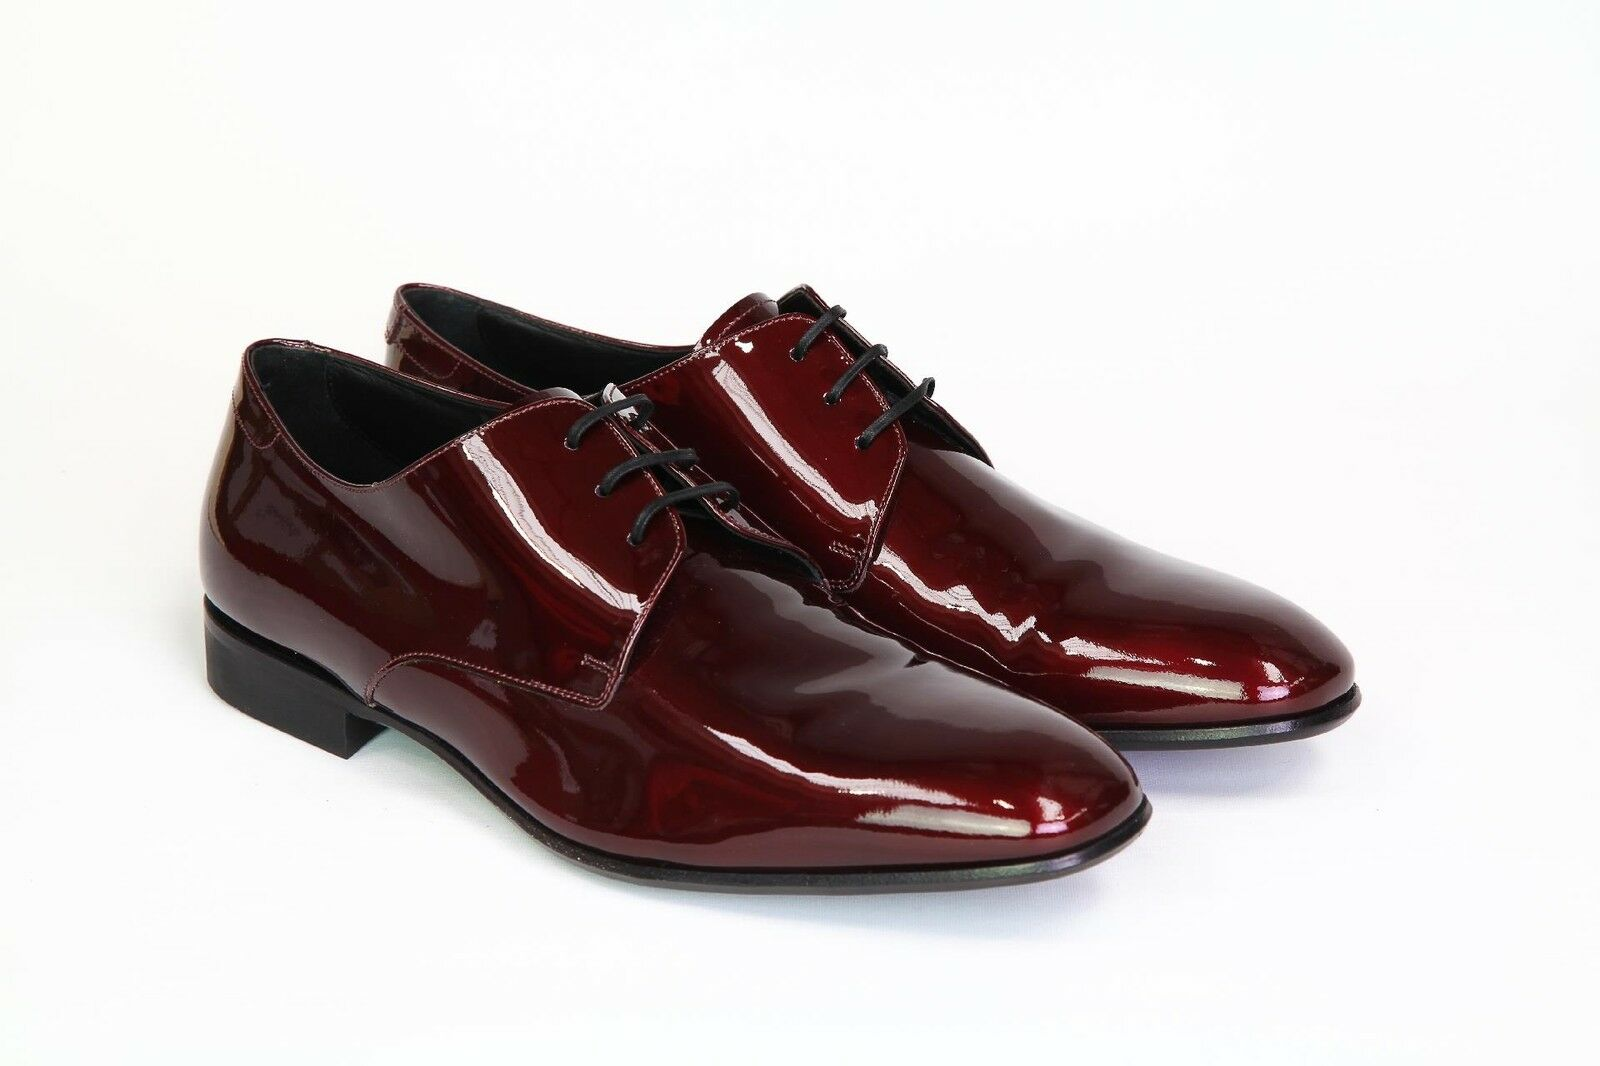 Salvatore Ferragamo Men's Shoes Shiny red Oxfords  9.5 US 43.5 NEW